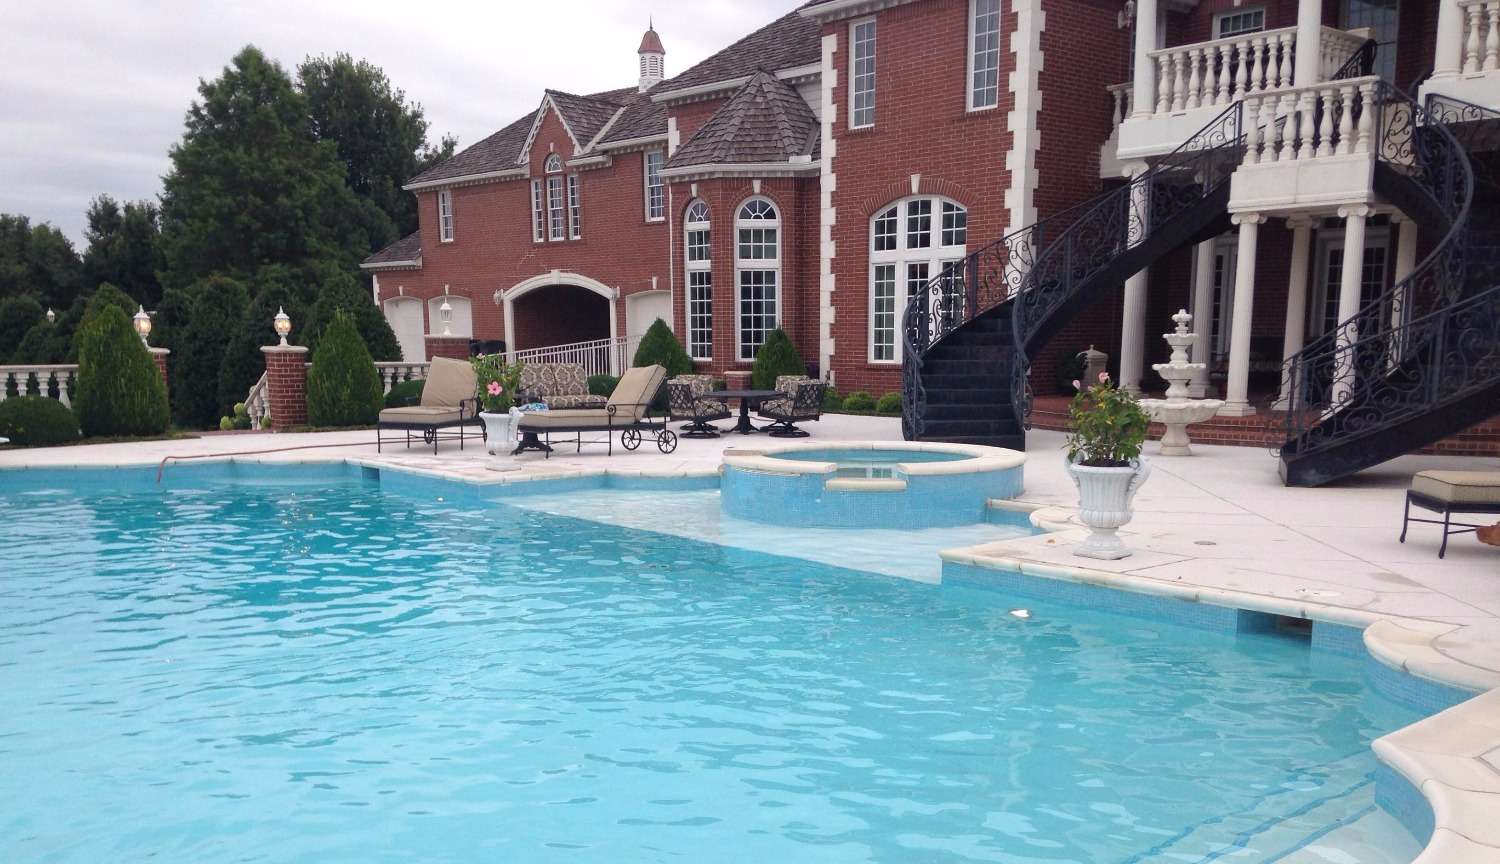 Preferred Pool Service, Tulsa OK